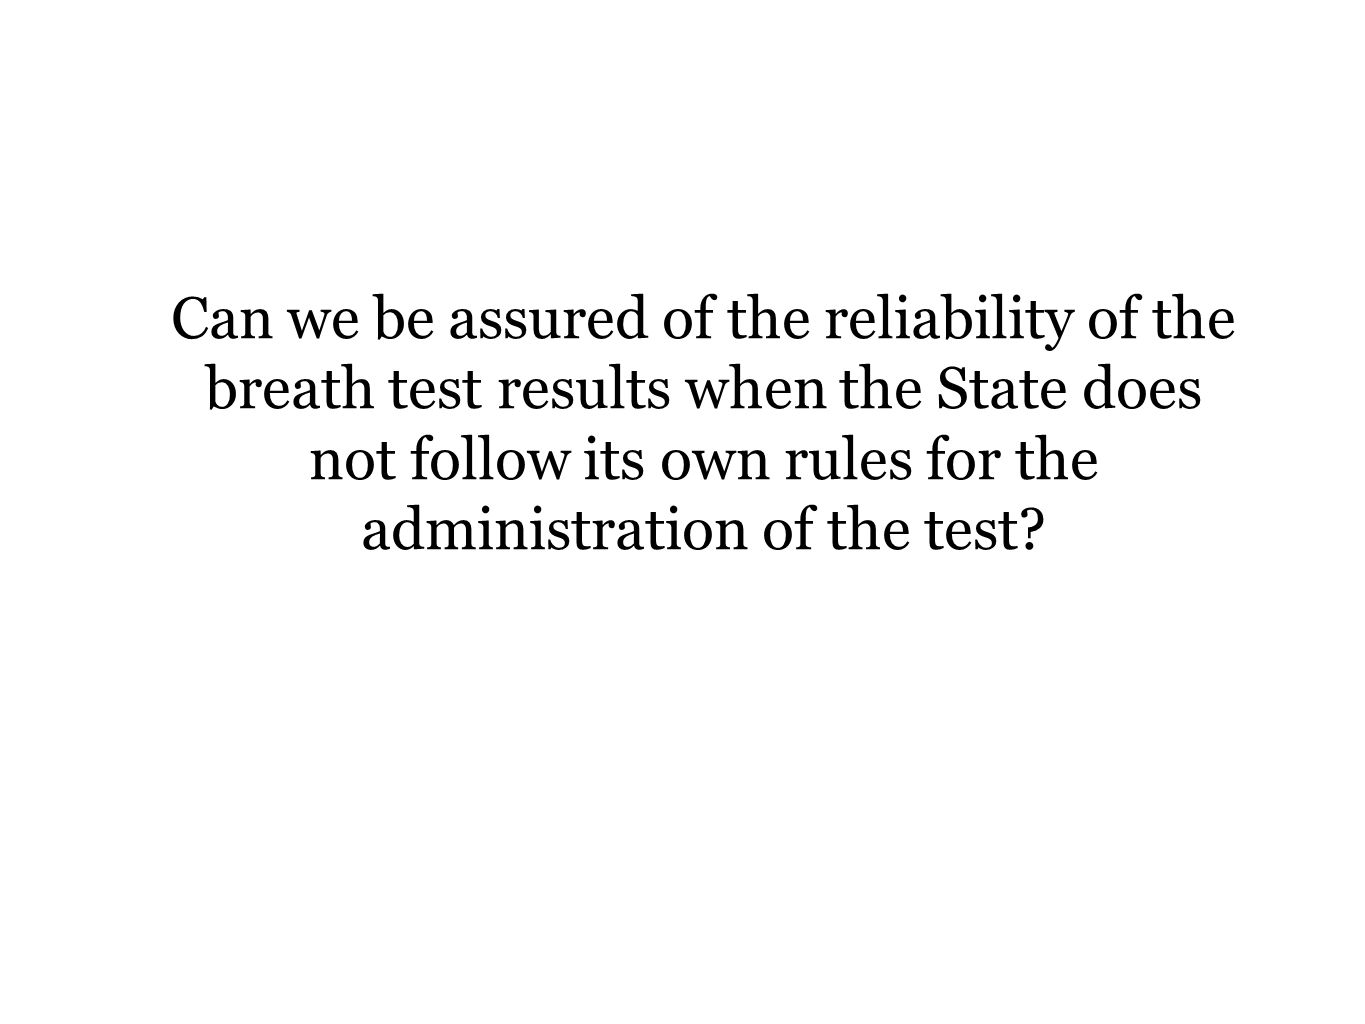 Can we be assured of the reliability of the breath test results when the State does not follow its own rules for the administration of the test